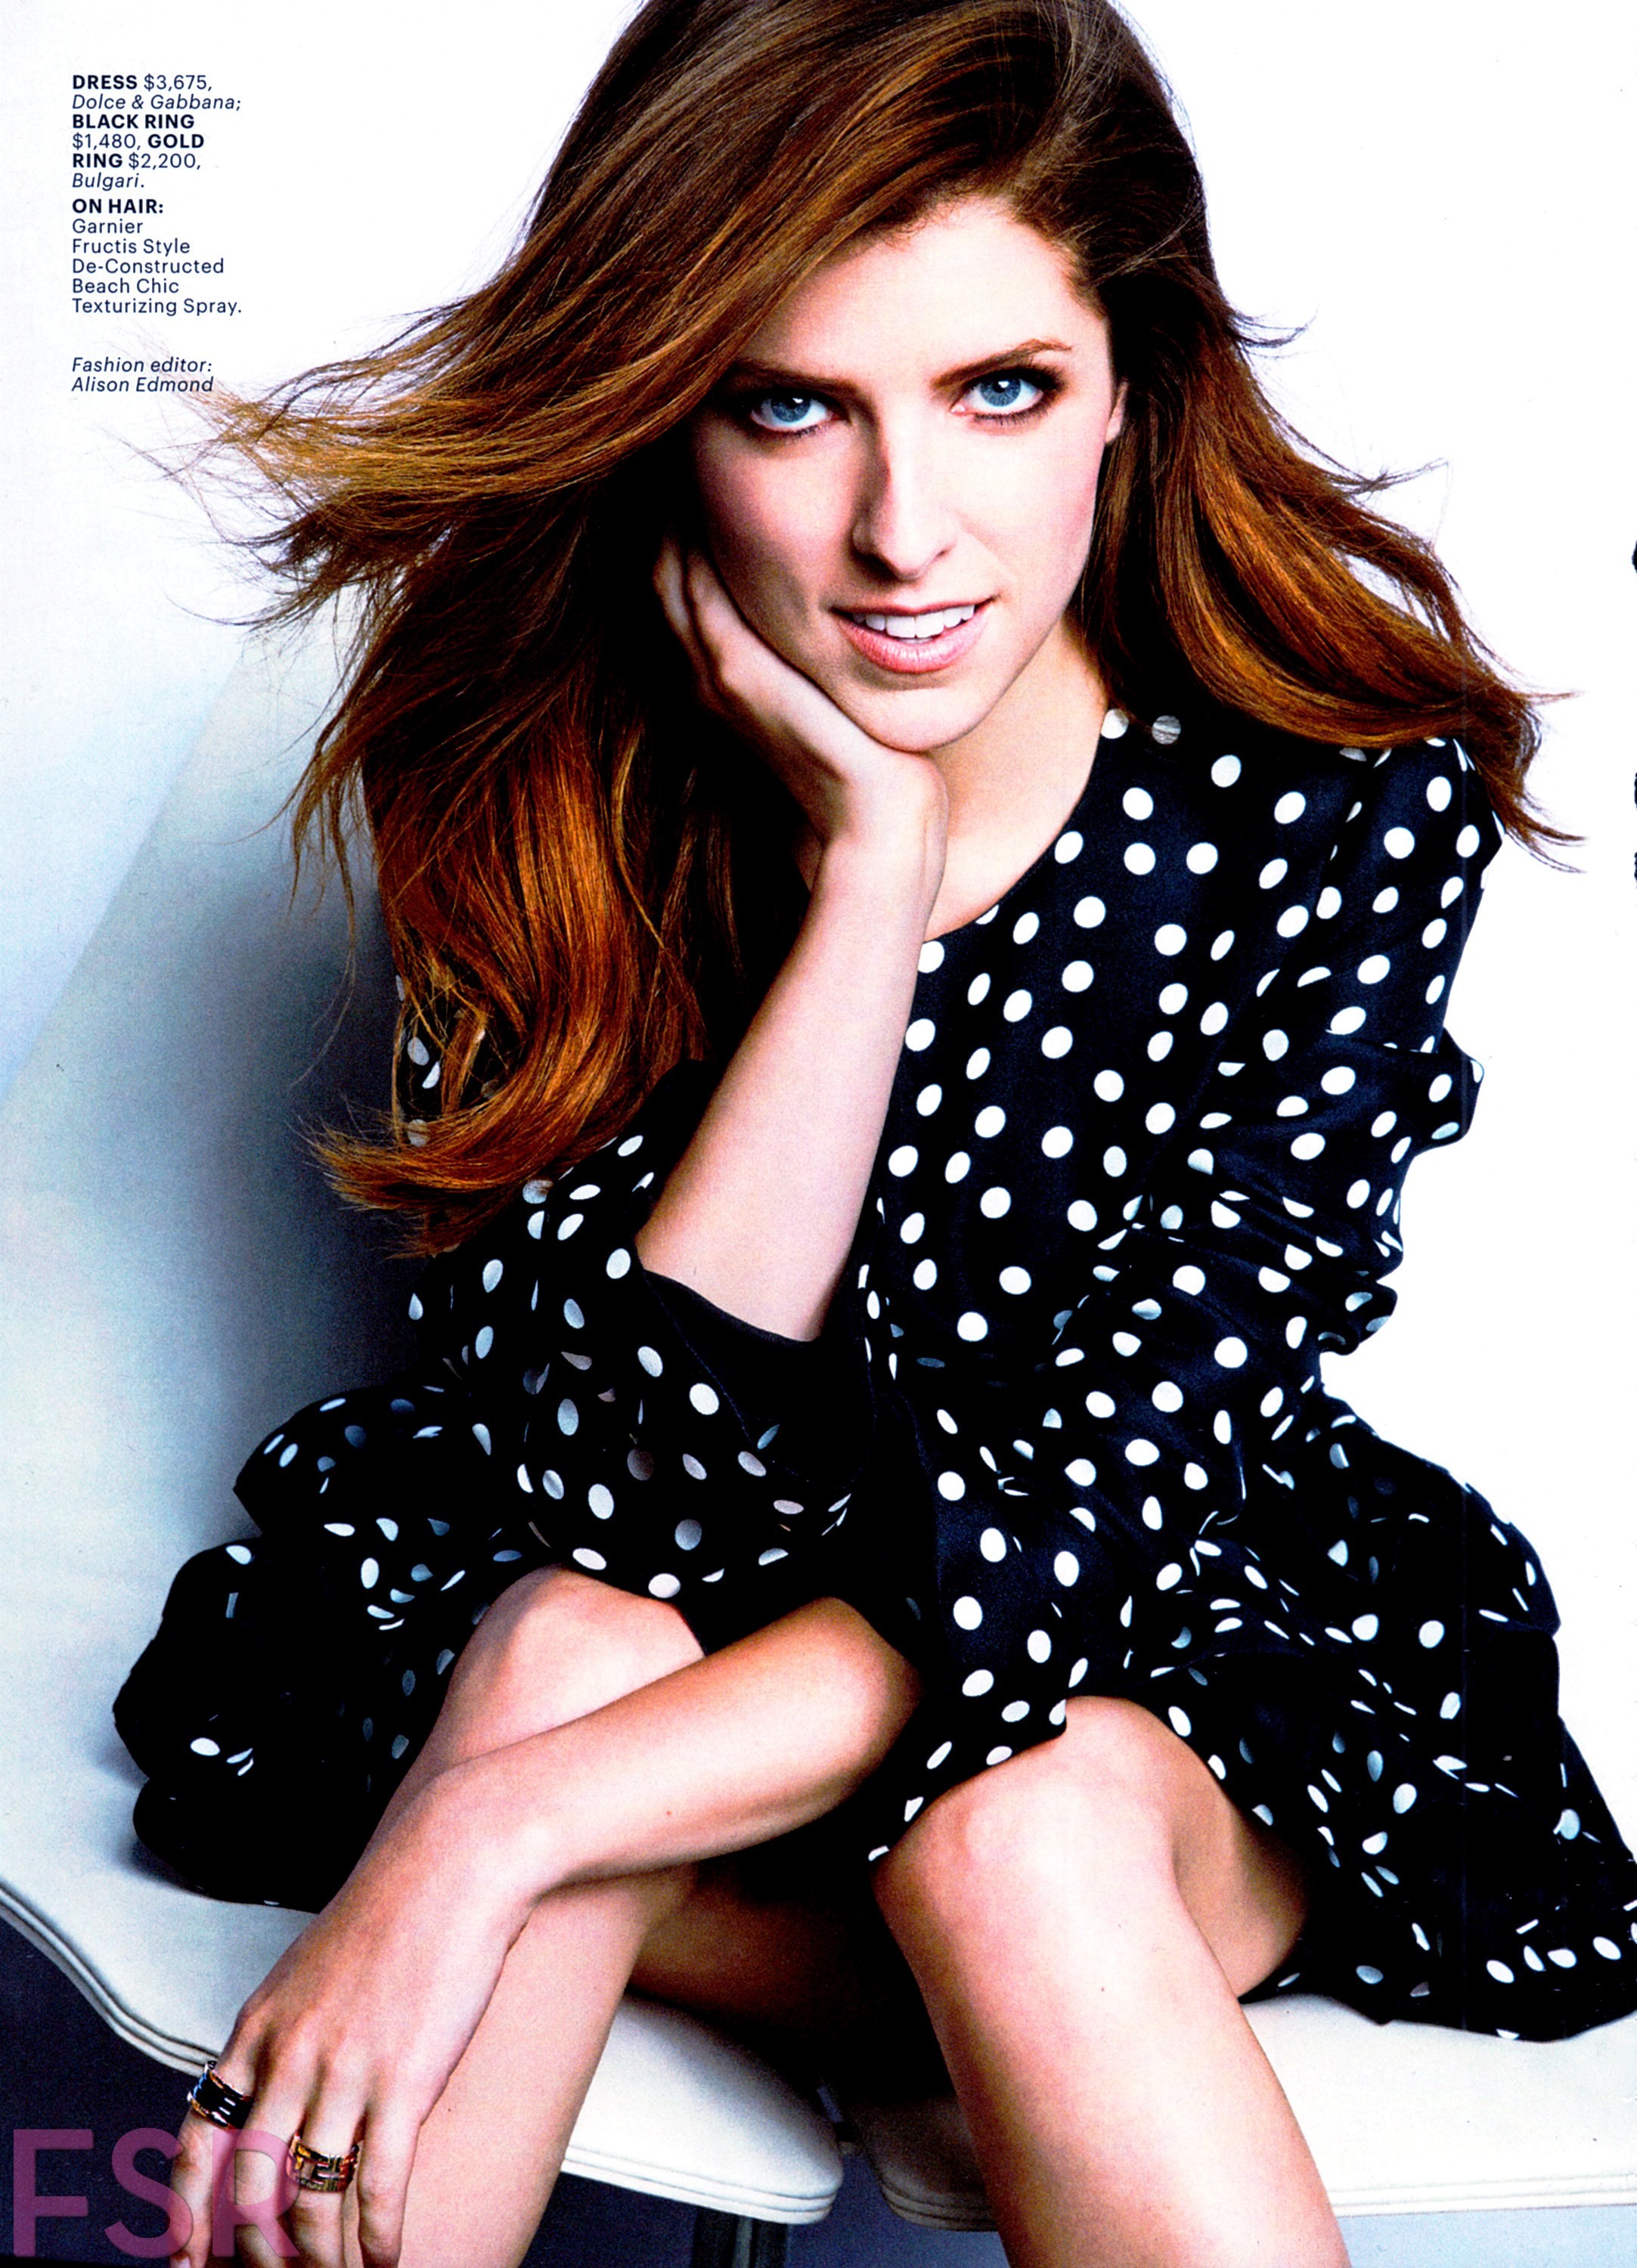 fashion_scans_remastered-anna_kendrick-marie_claire_usa-december_2014_akvn.net (4).jpg